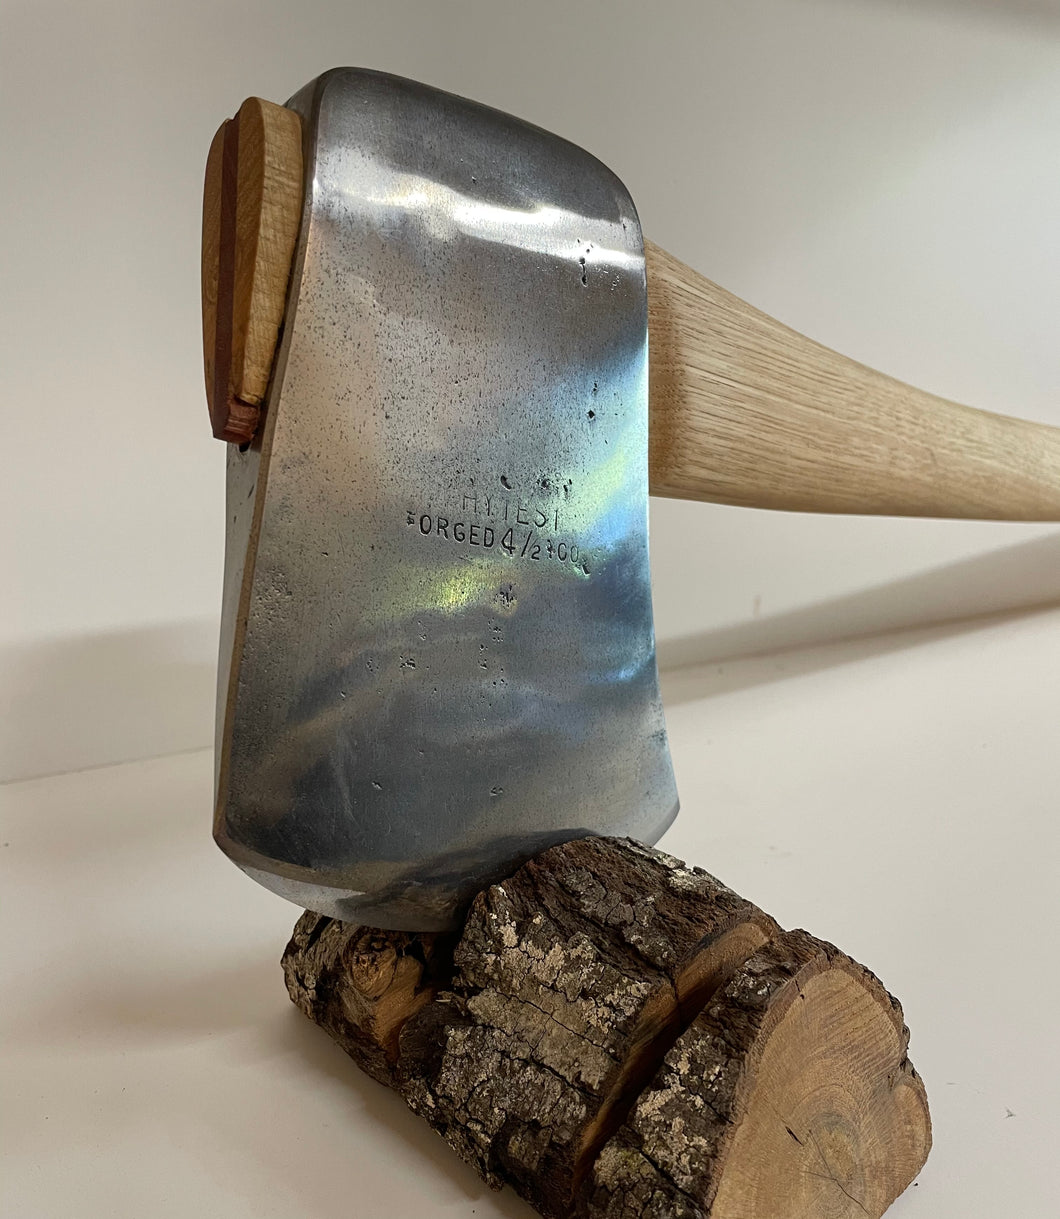 SOLD. Hytest 4 1/2lb Reconditioned Axe including leather cover and hickory handle